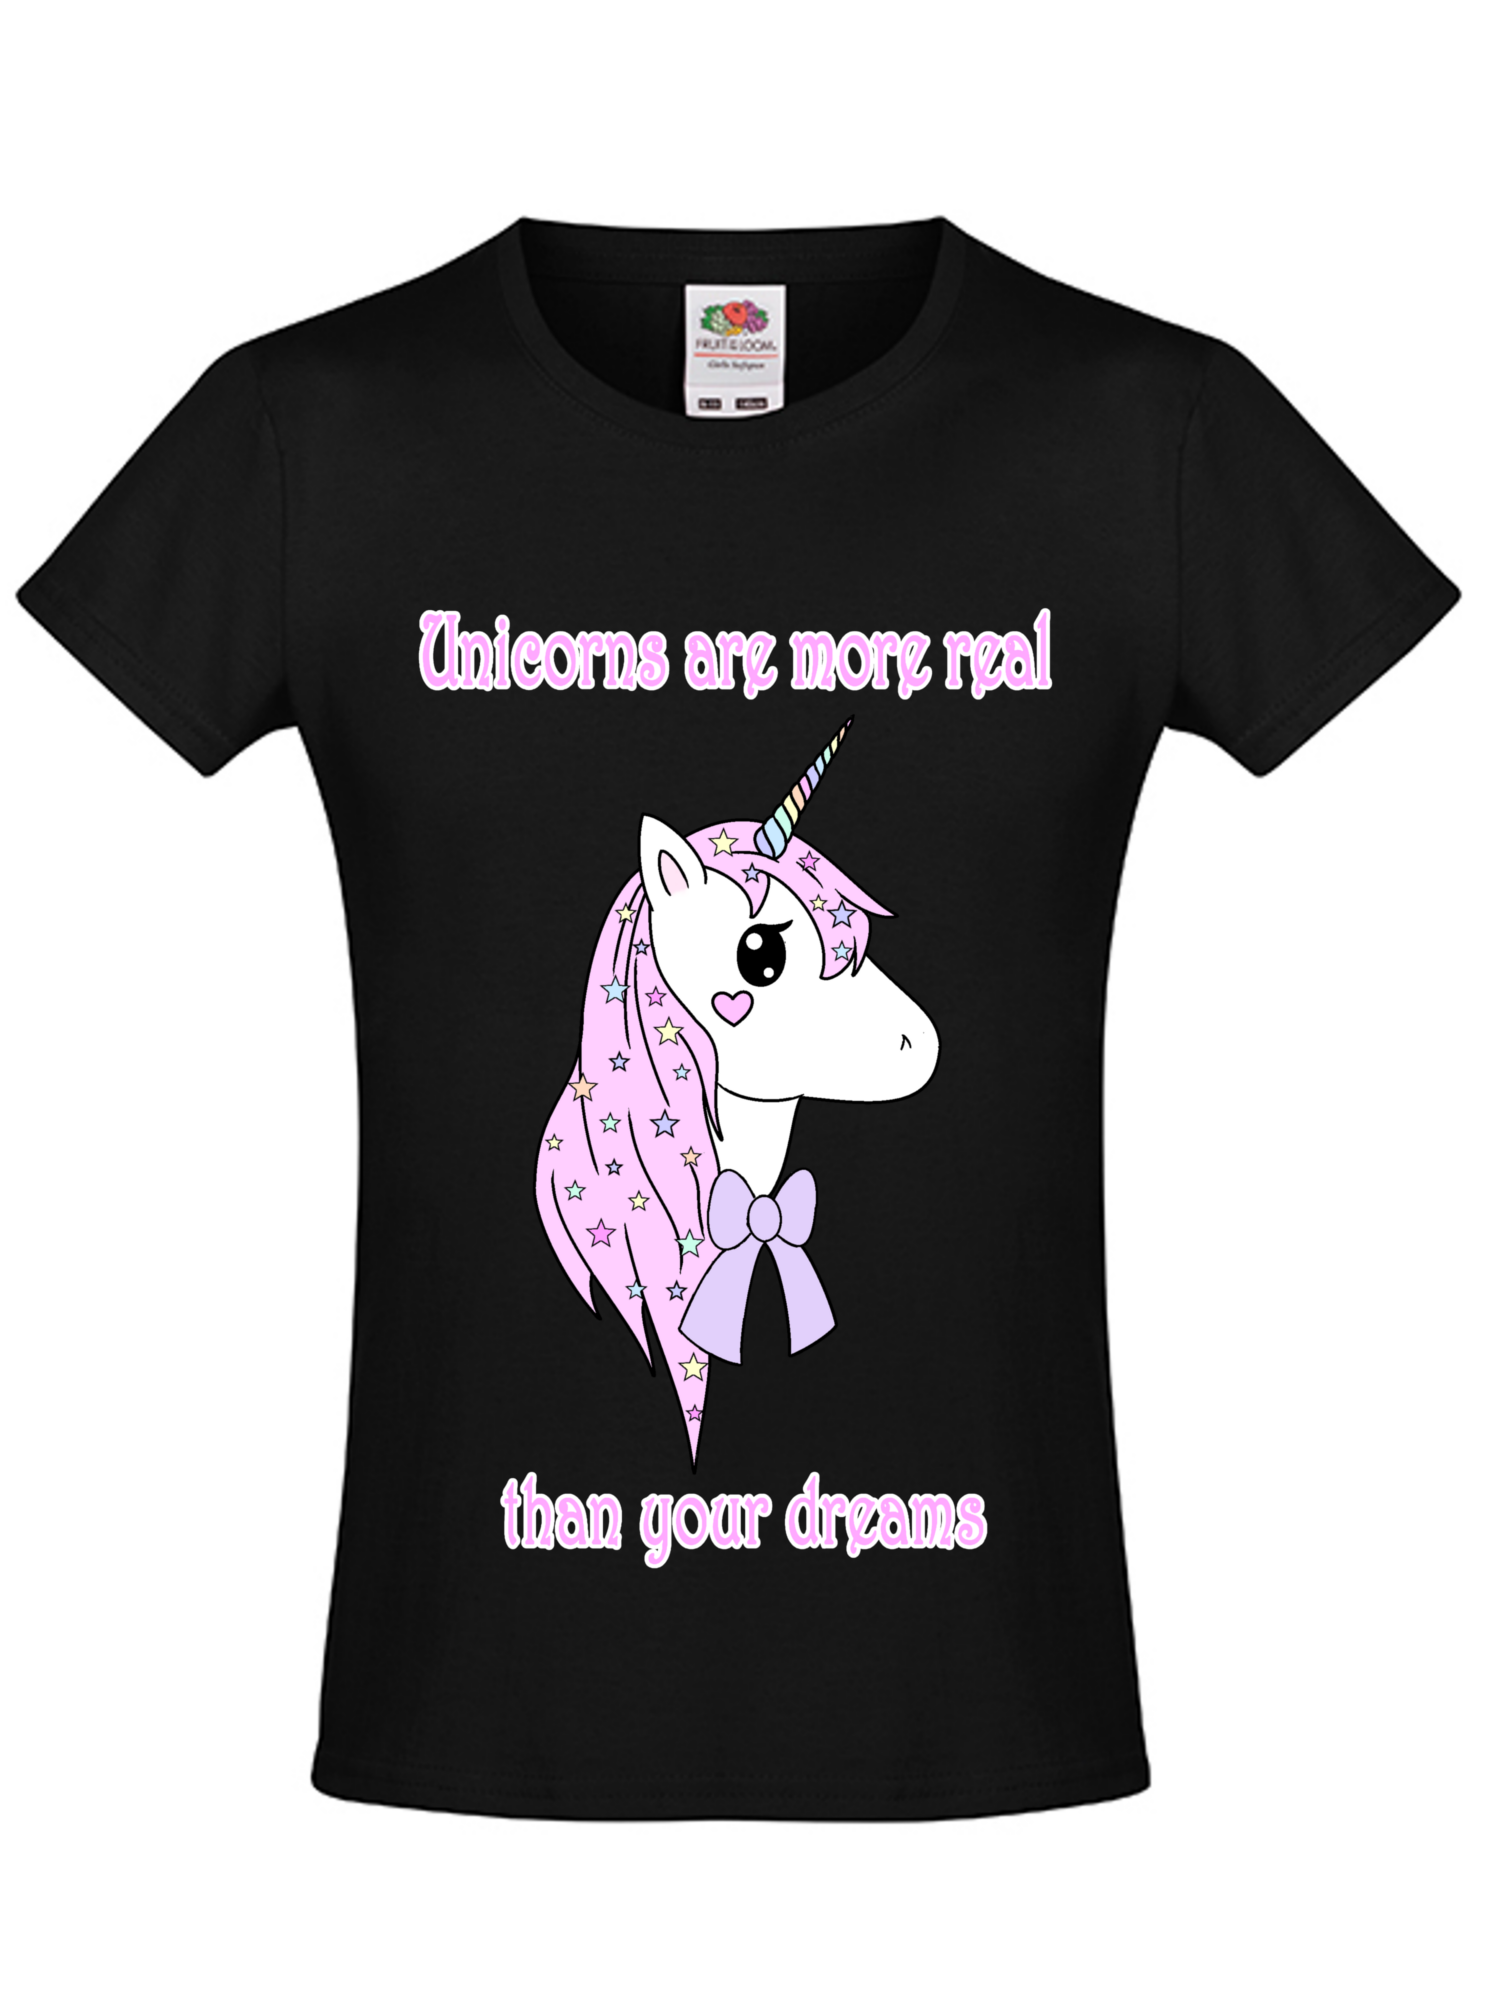 02341efd858f T-Shirt Unicorns are more real than you´re dreams print on Storenvy